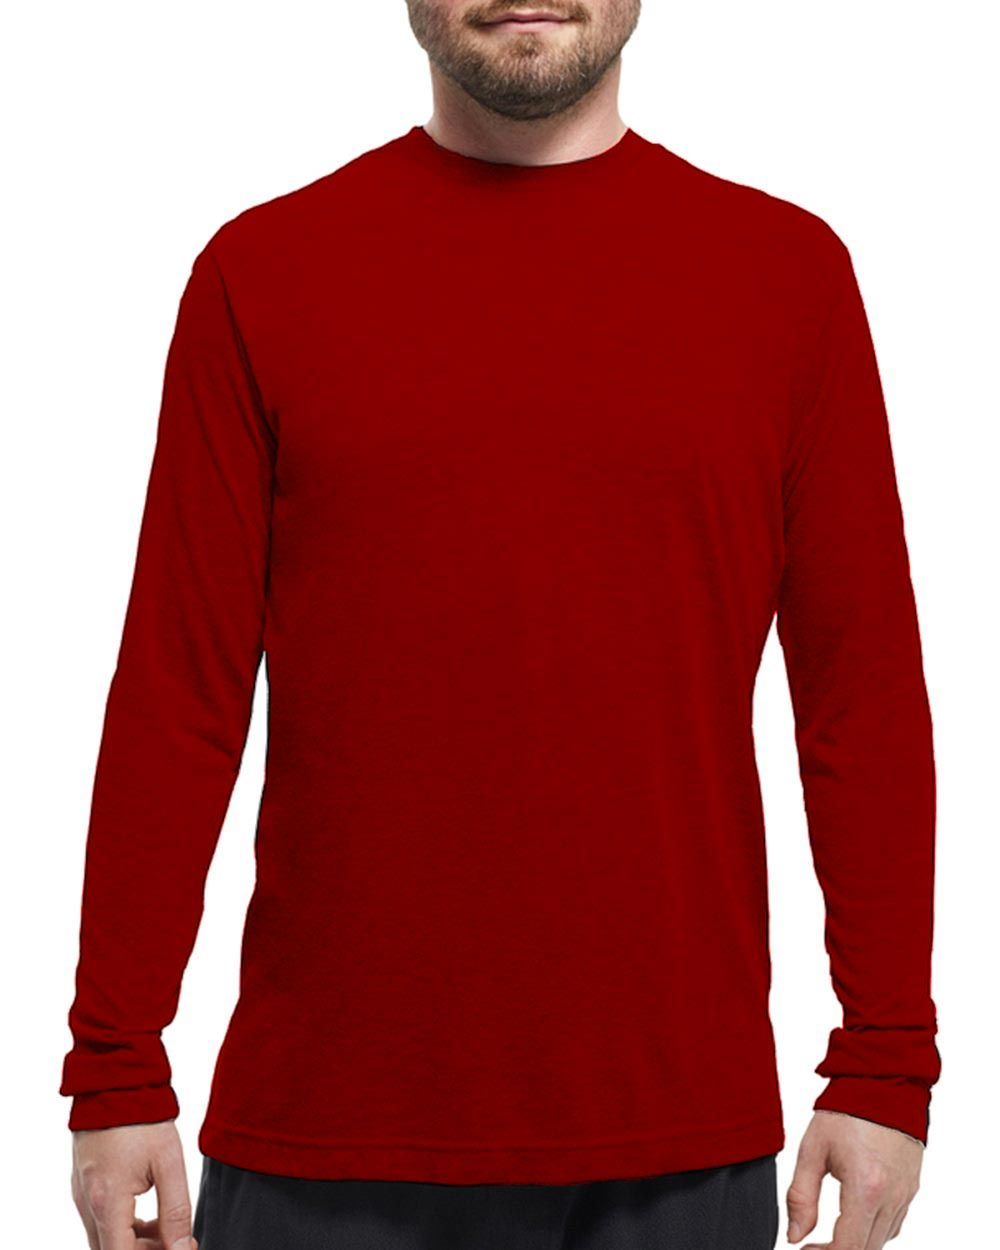 M&O Knits 4820 - Gold Soft Touch Long Sleeve T-Shirt